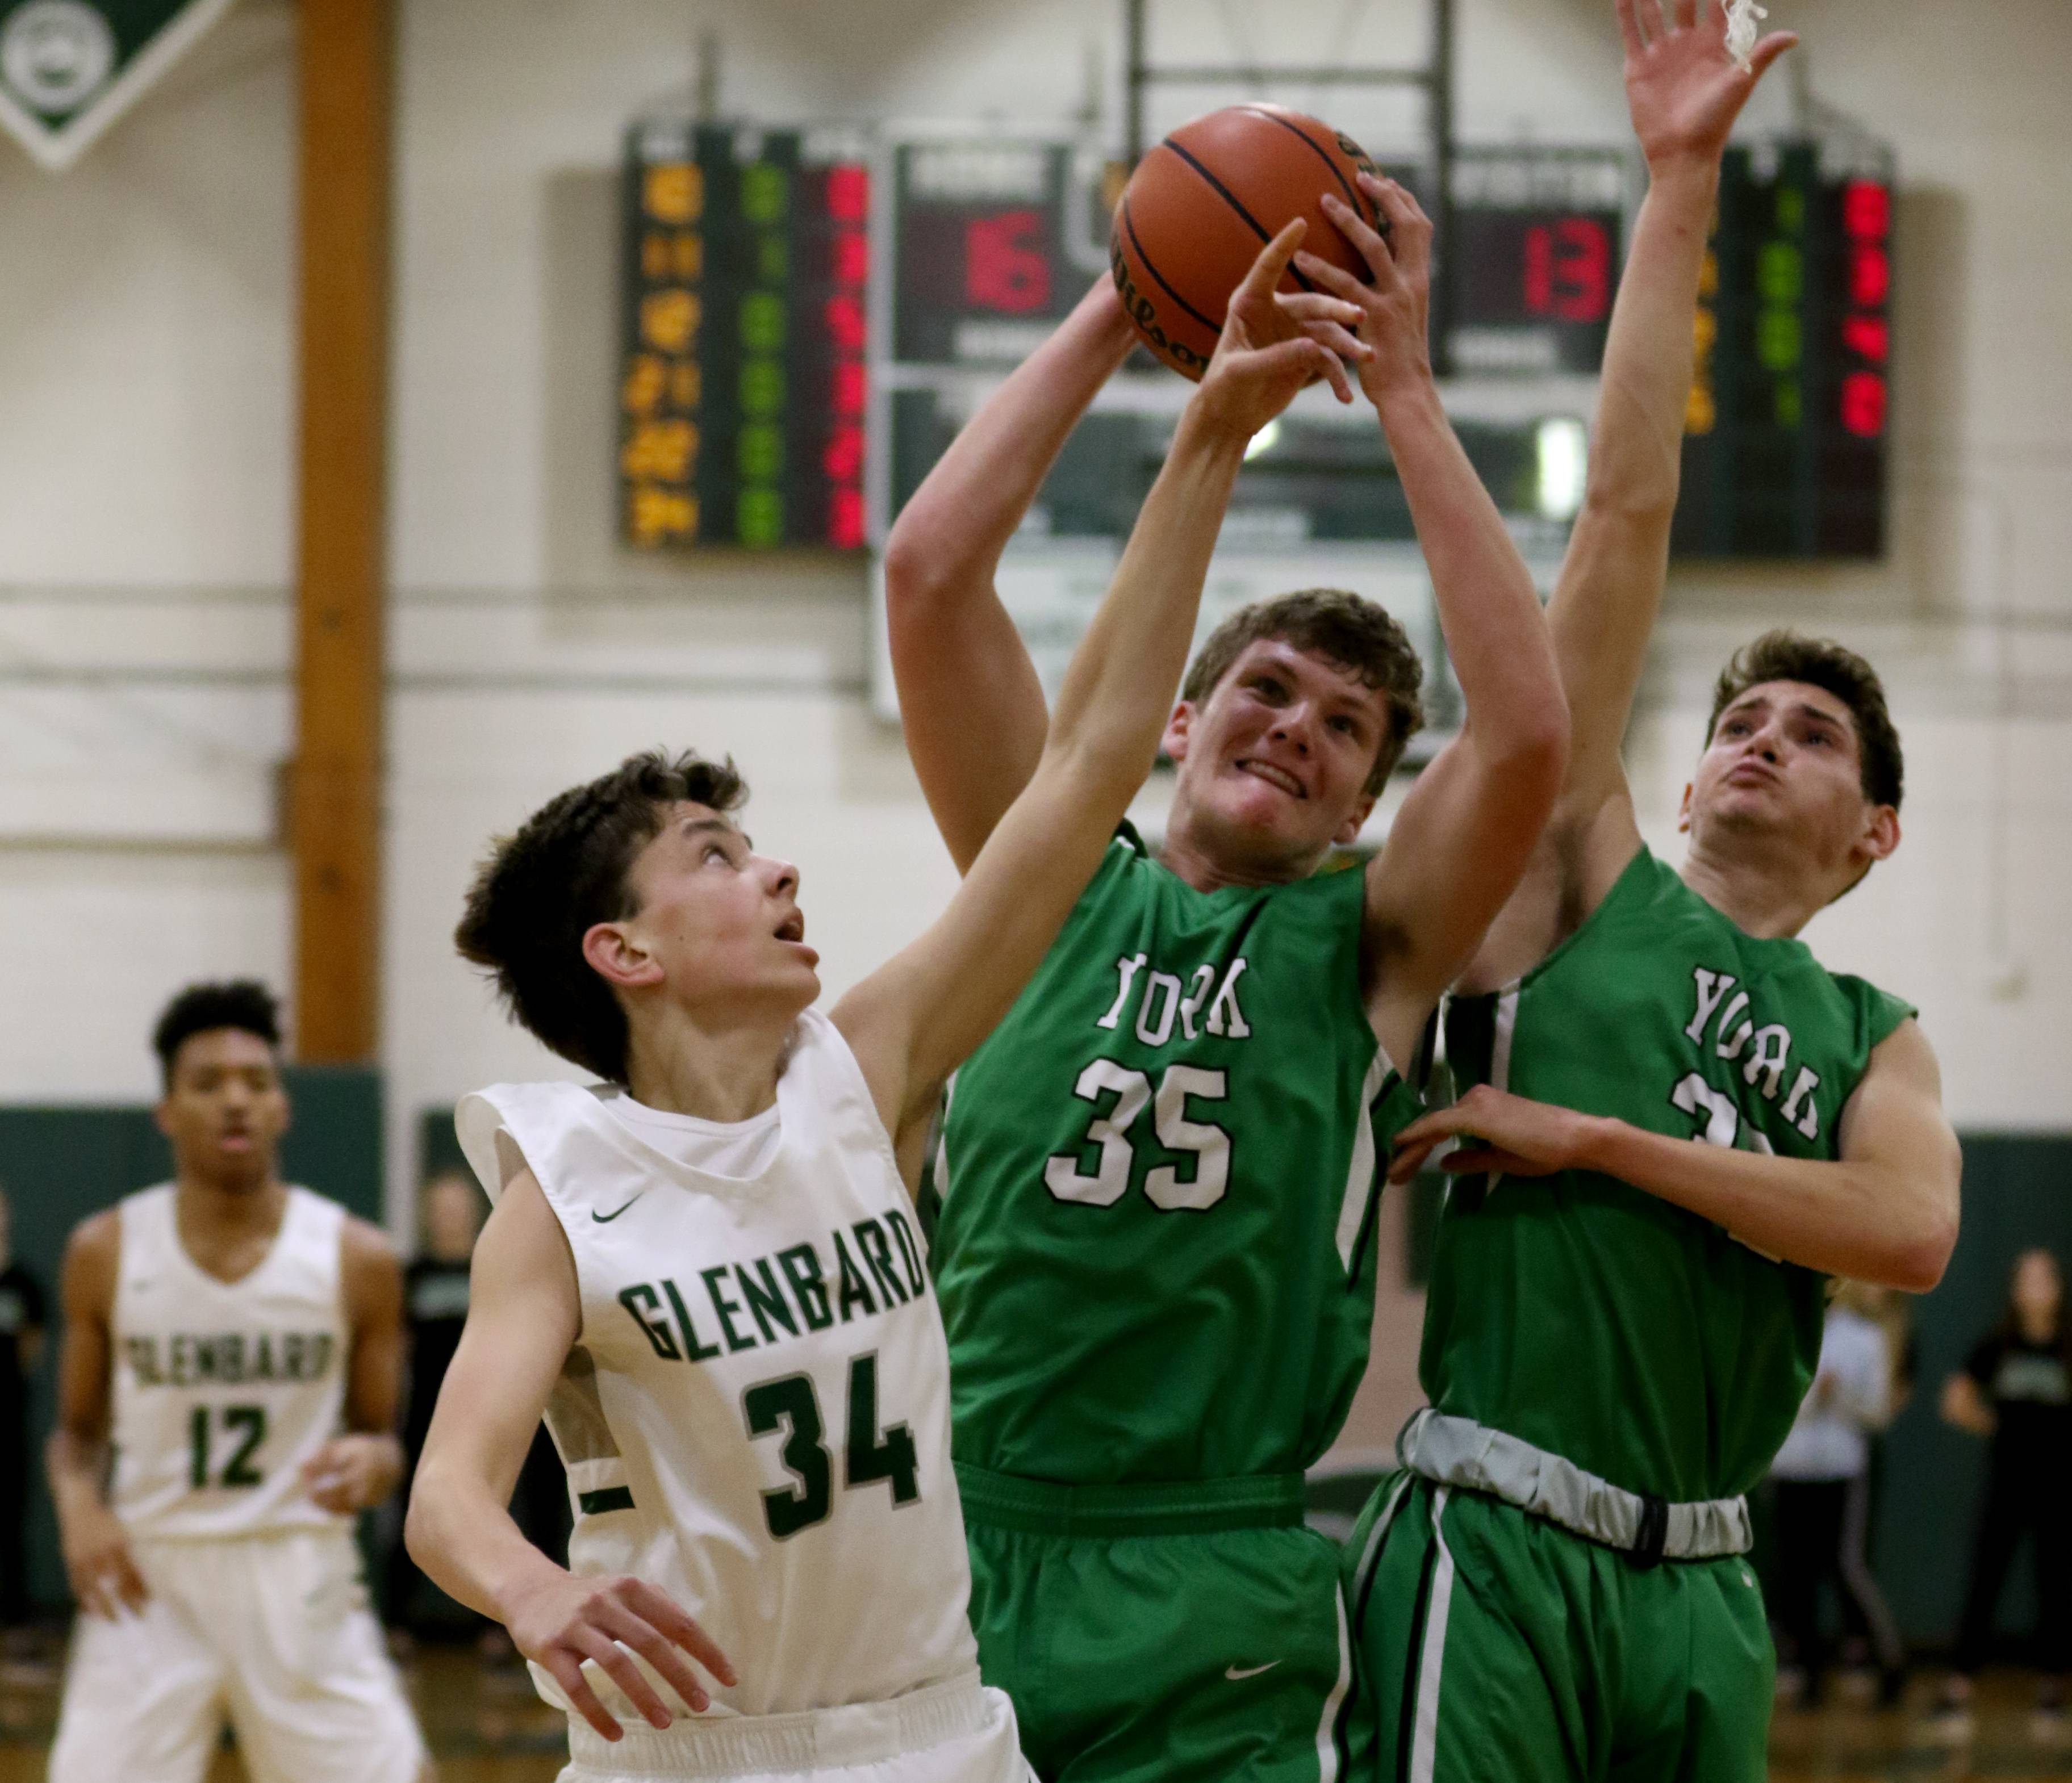 From left, Glenbard West's Braden Huff and York's Sam Walsh and Erik Cohn battle for a rebound during varsity boys basketball at Fred L. Biester Gymnasium on the campus of Glenbard West Tuesday night.